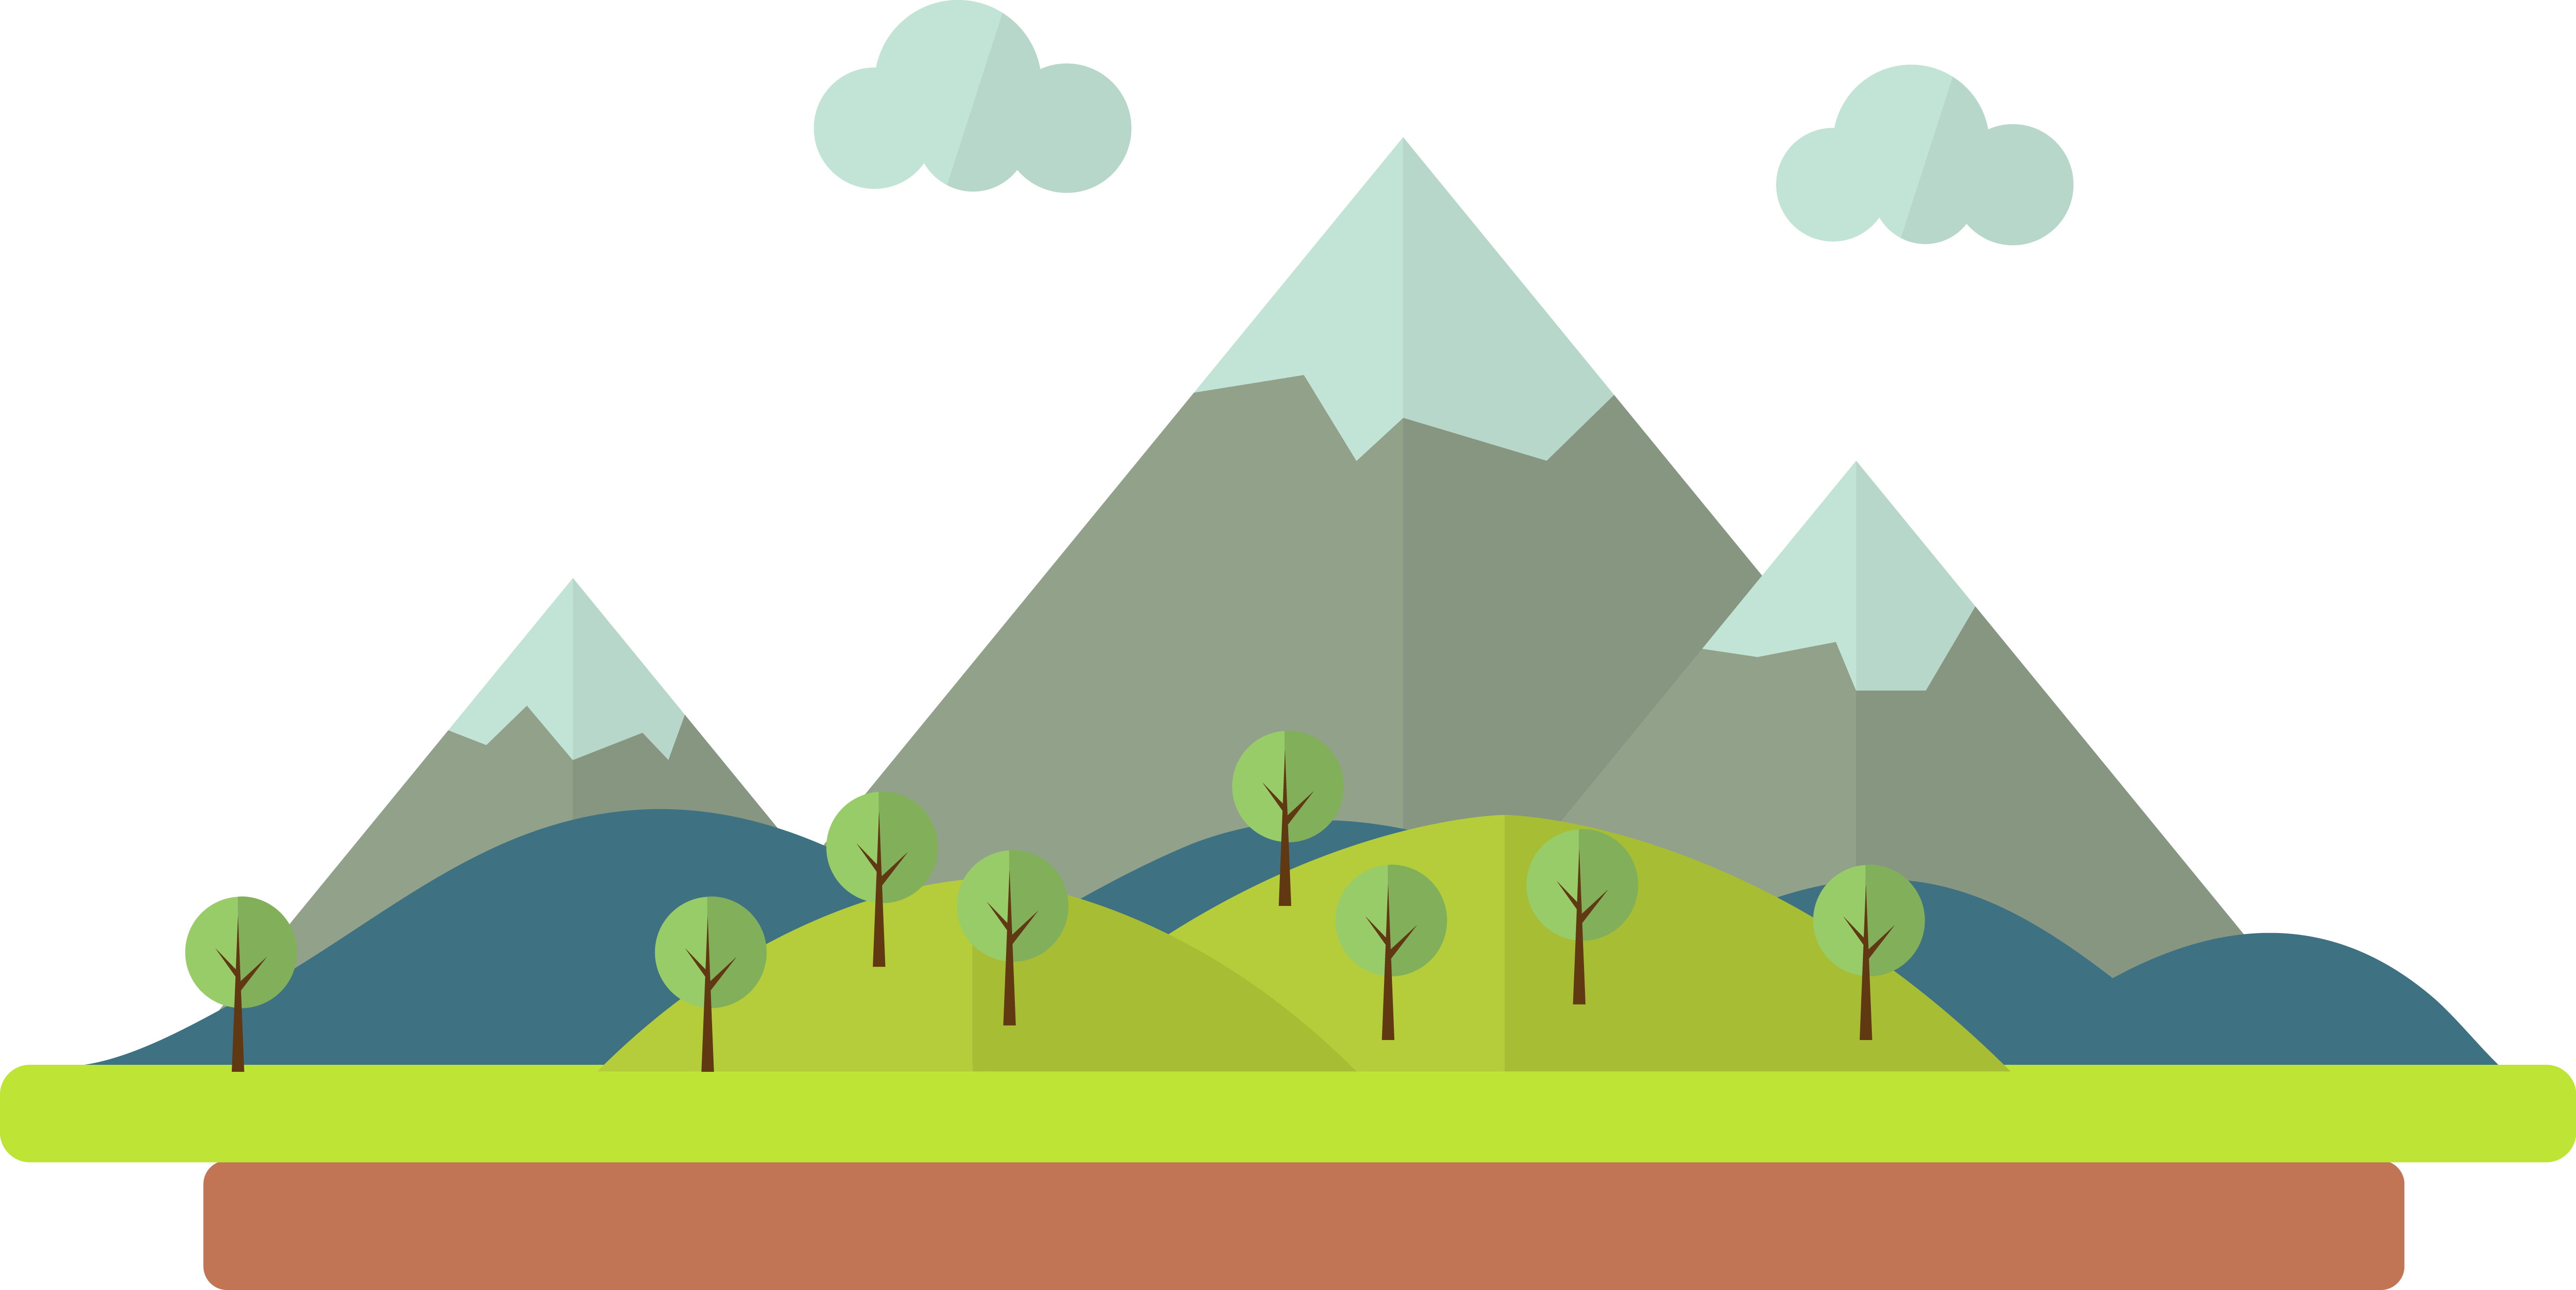 Cartoon mountains png. Drawing illustration mountain scenery